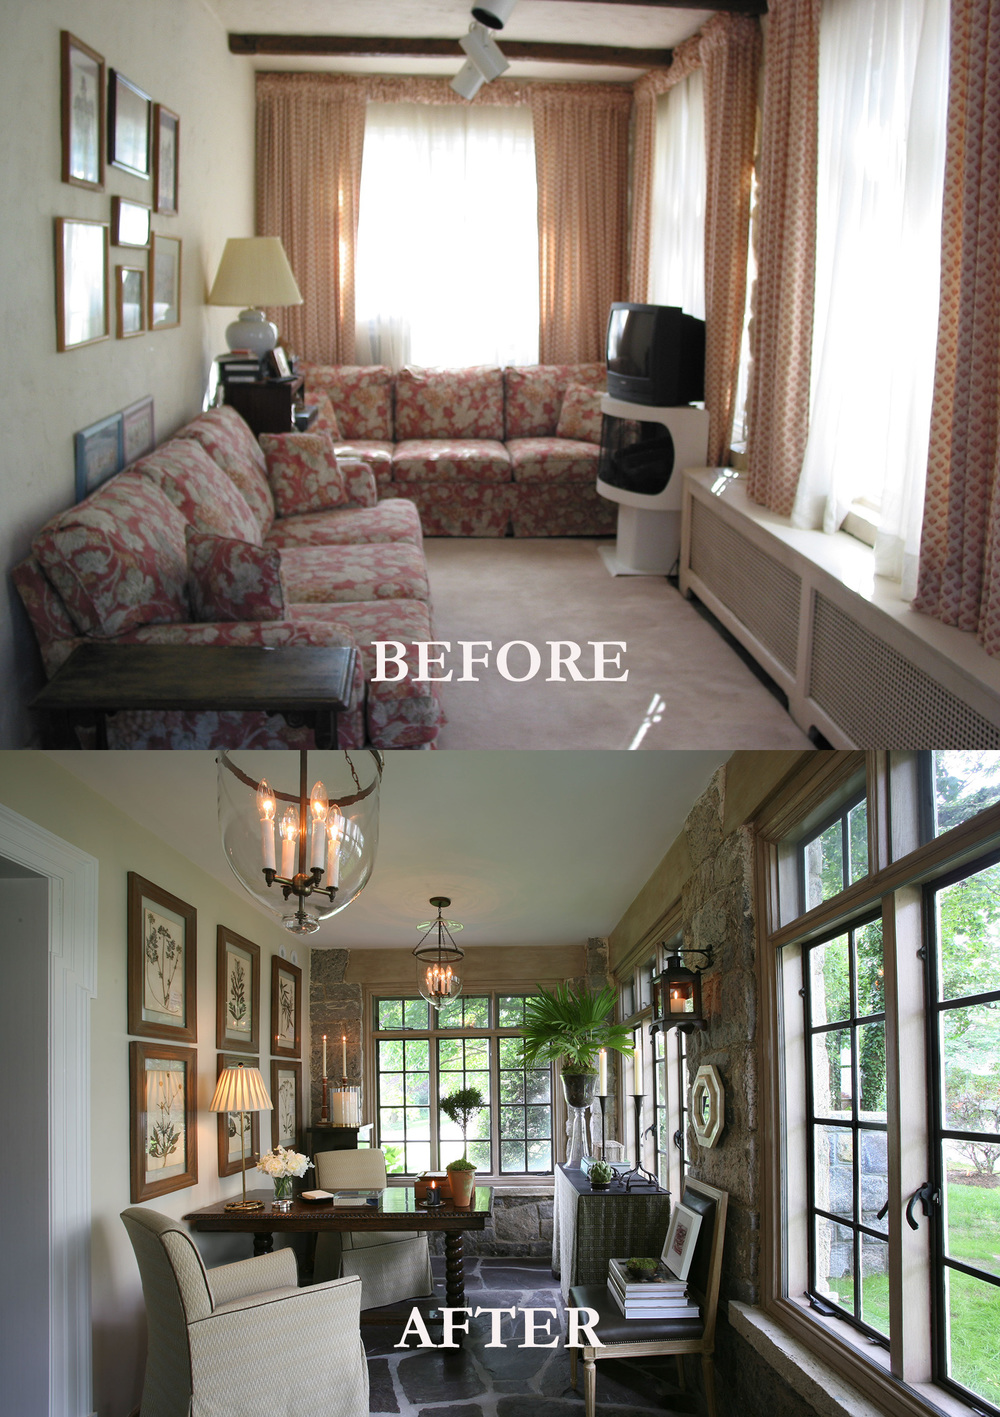 Rod Winterrowd | Before and After | Bronxville, NY | Garden Room